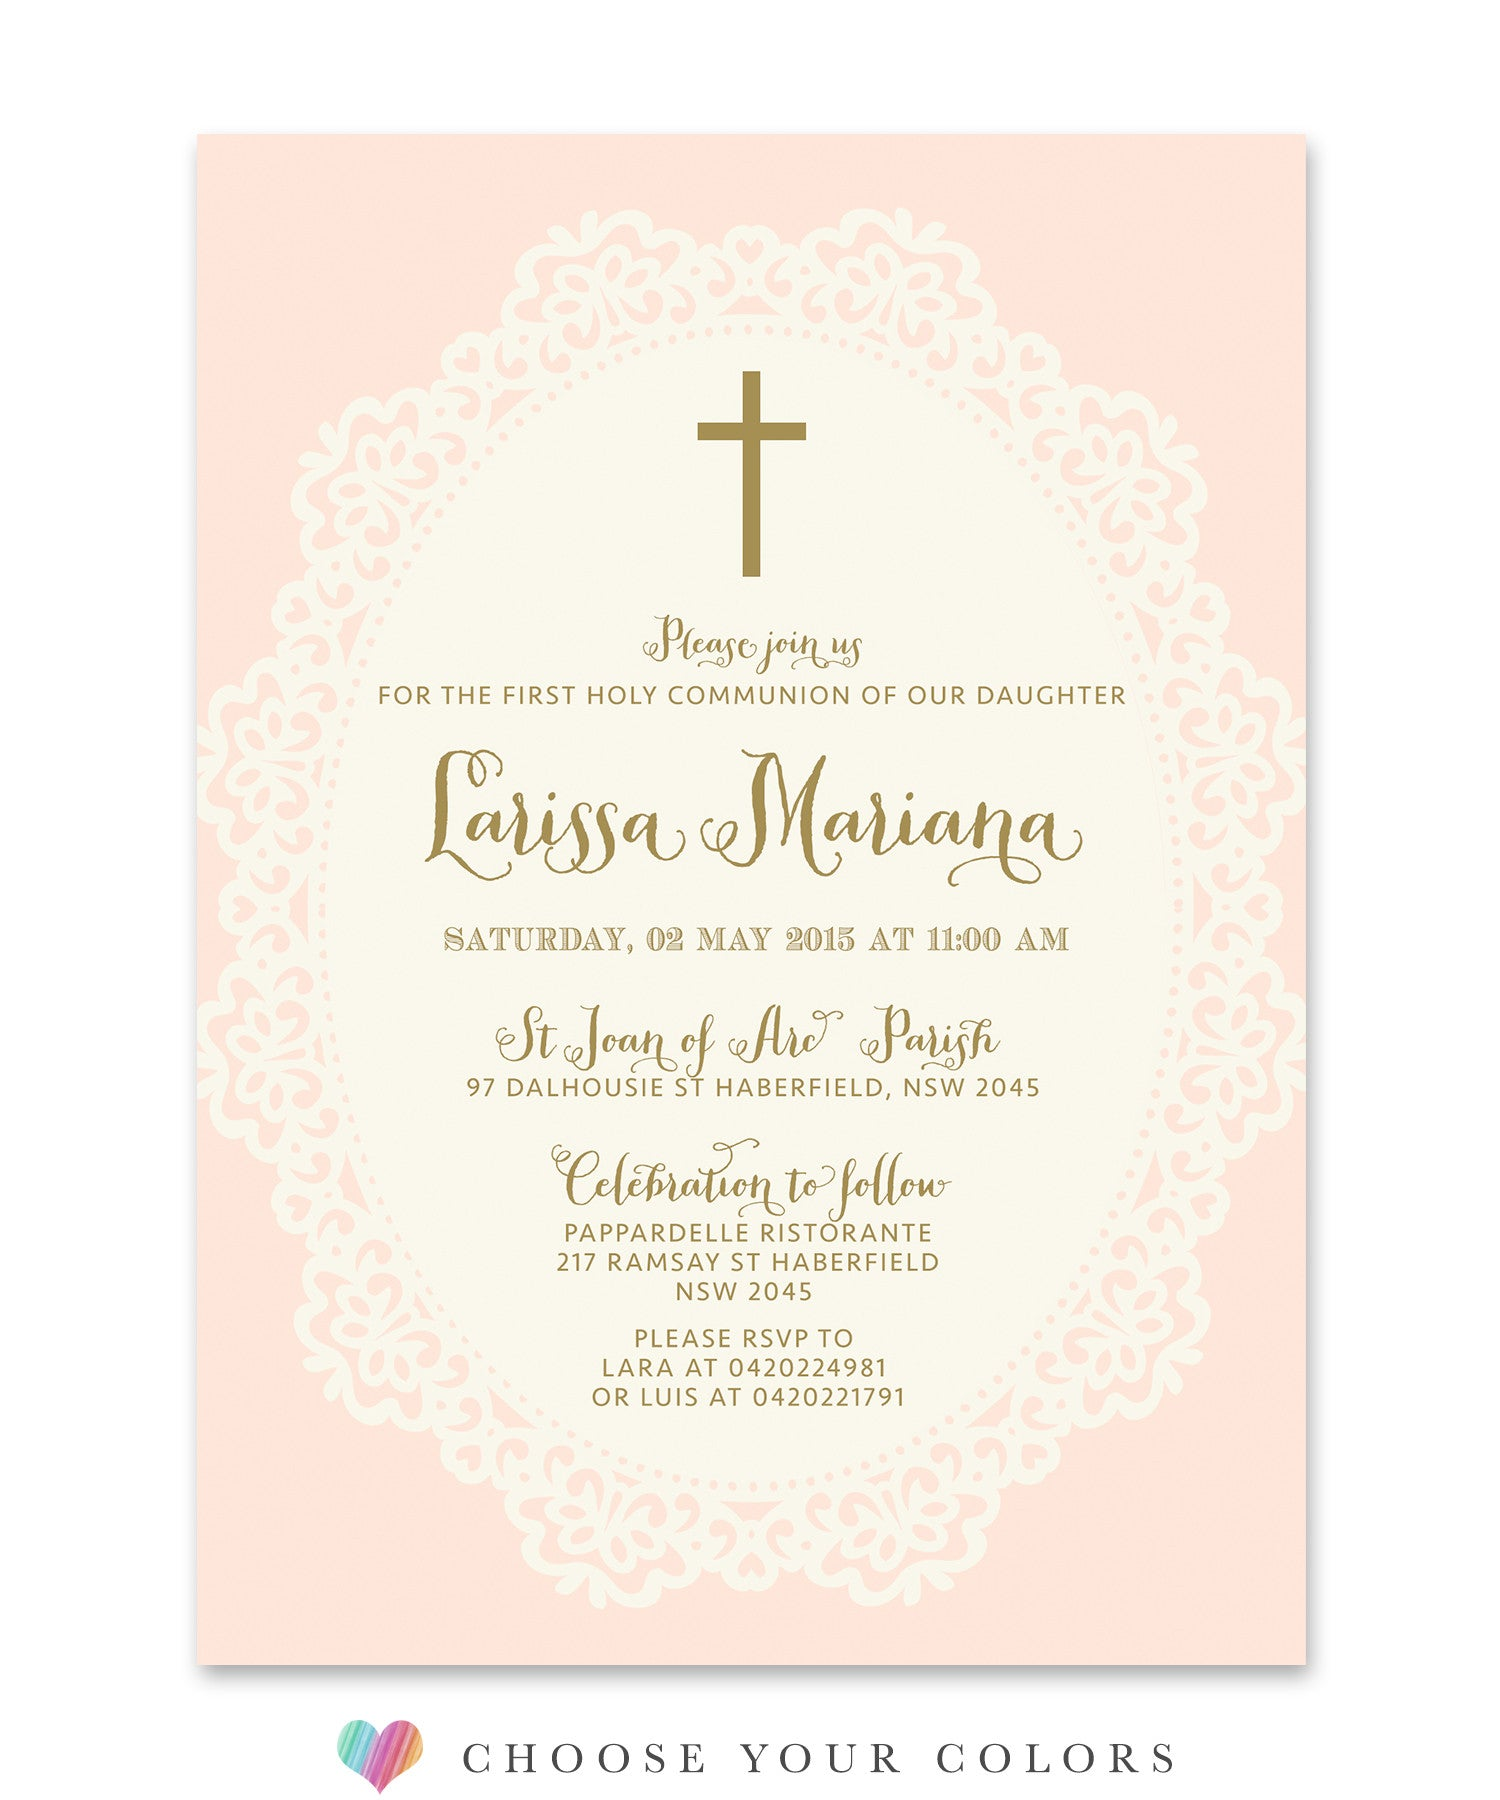 ella first communion invitation for girls shabby chic pink lace